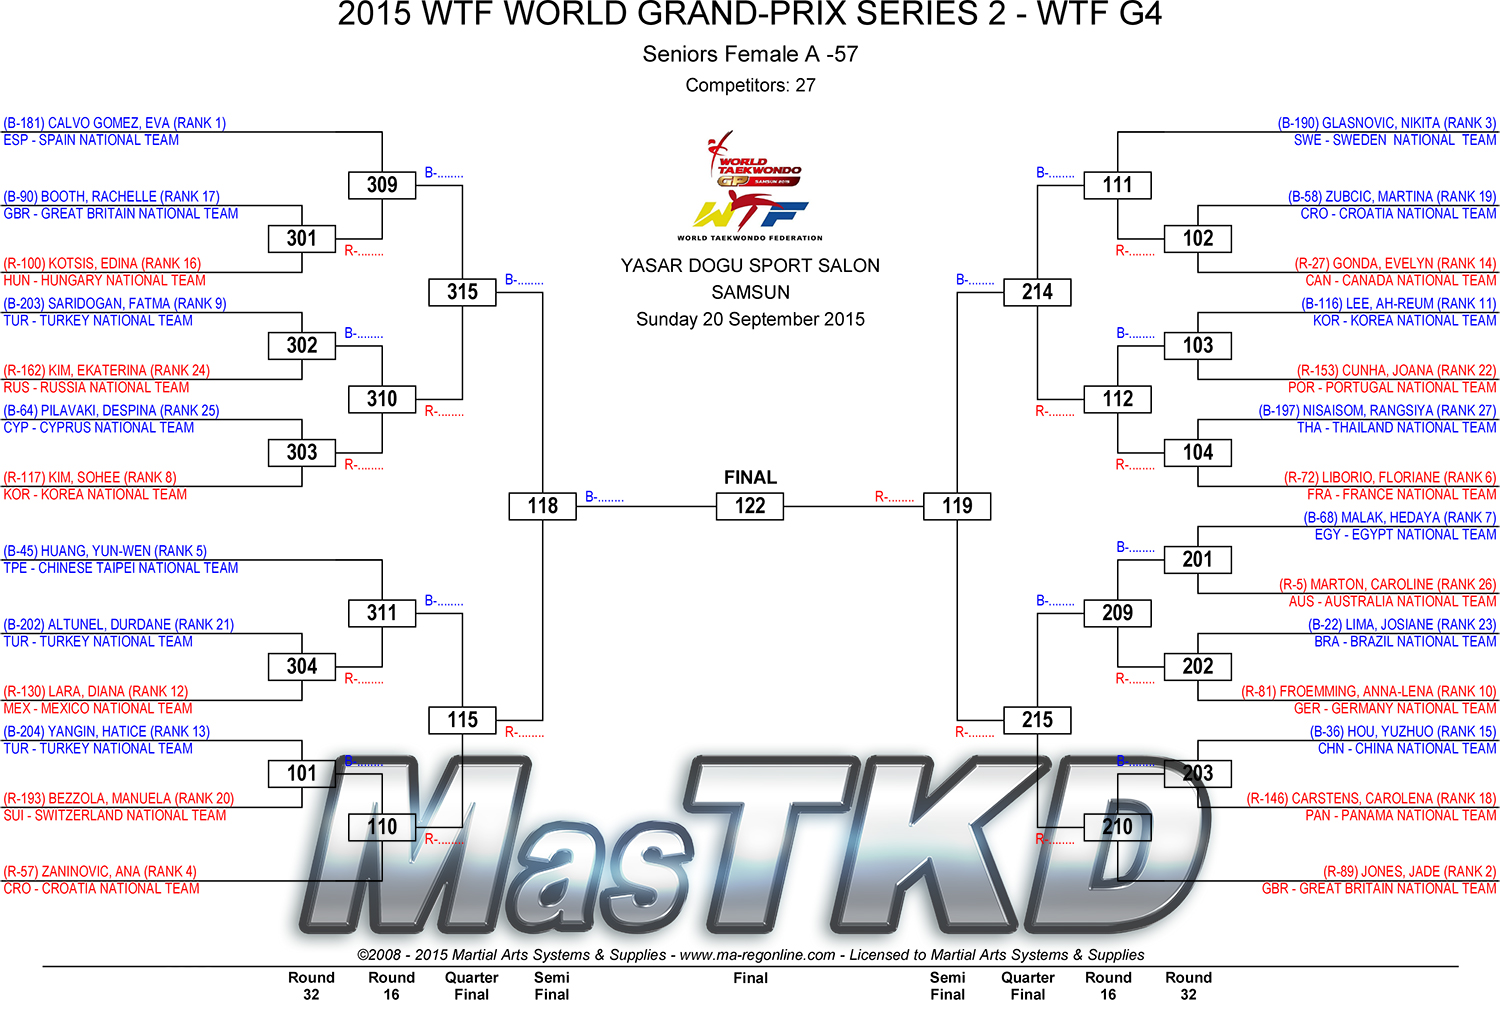 2015-WTF-WORLD-GRAND-PRIX-SERIES-2-DRAW-D3_F-57